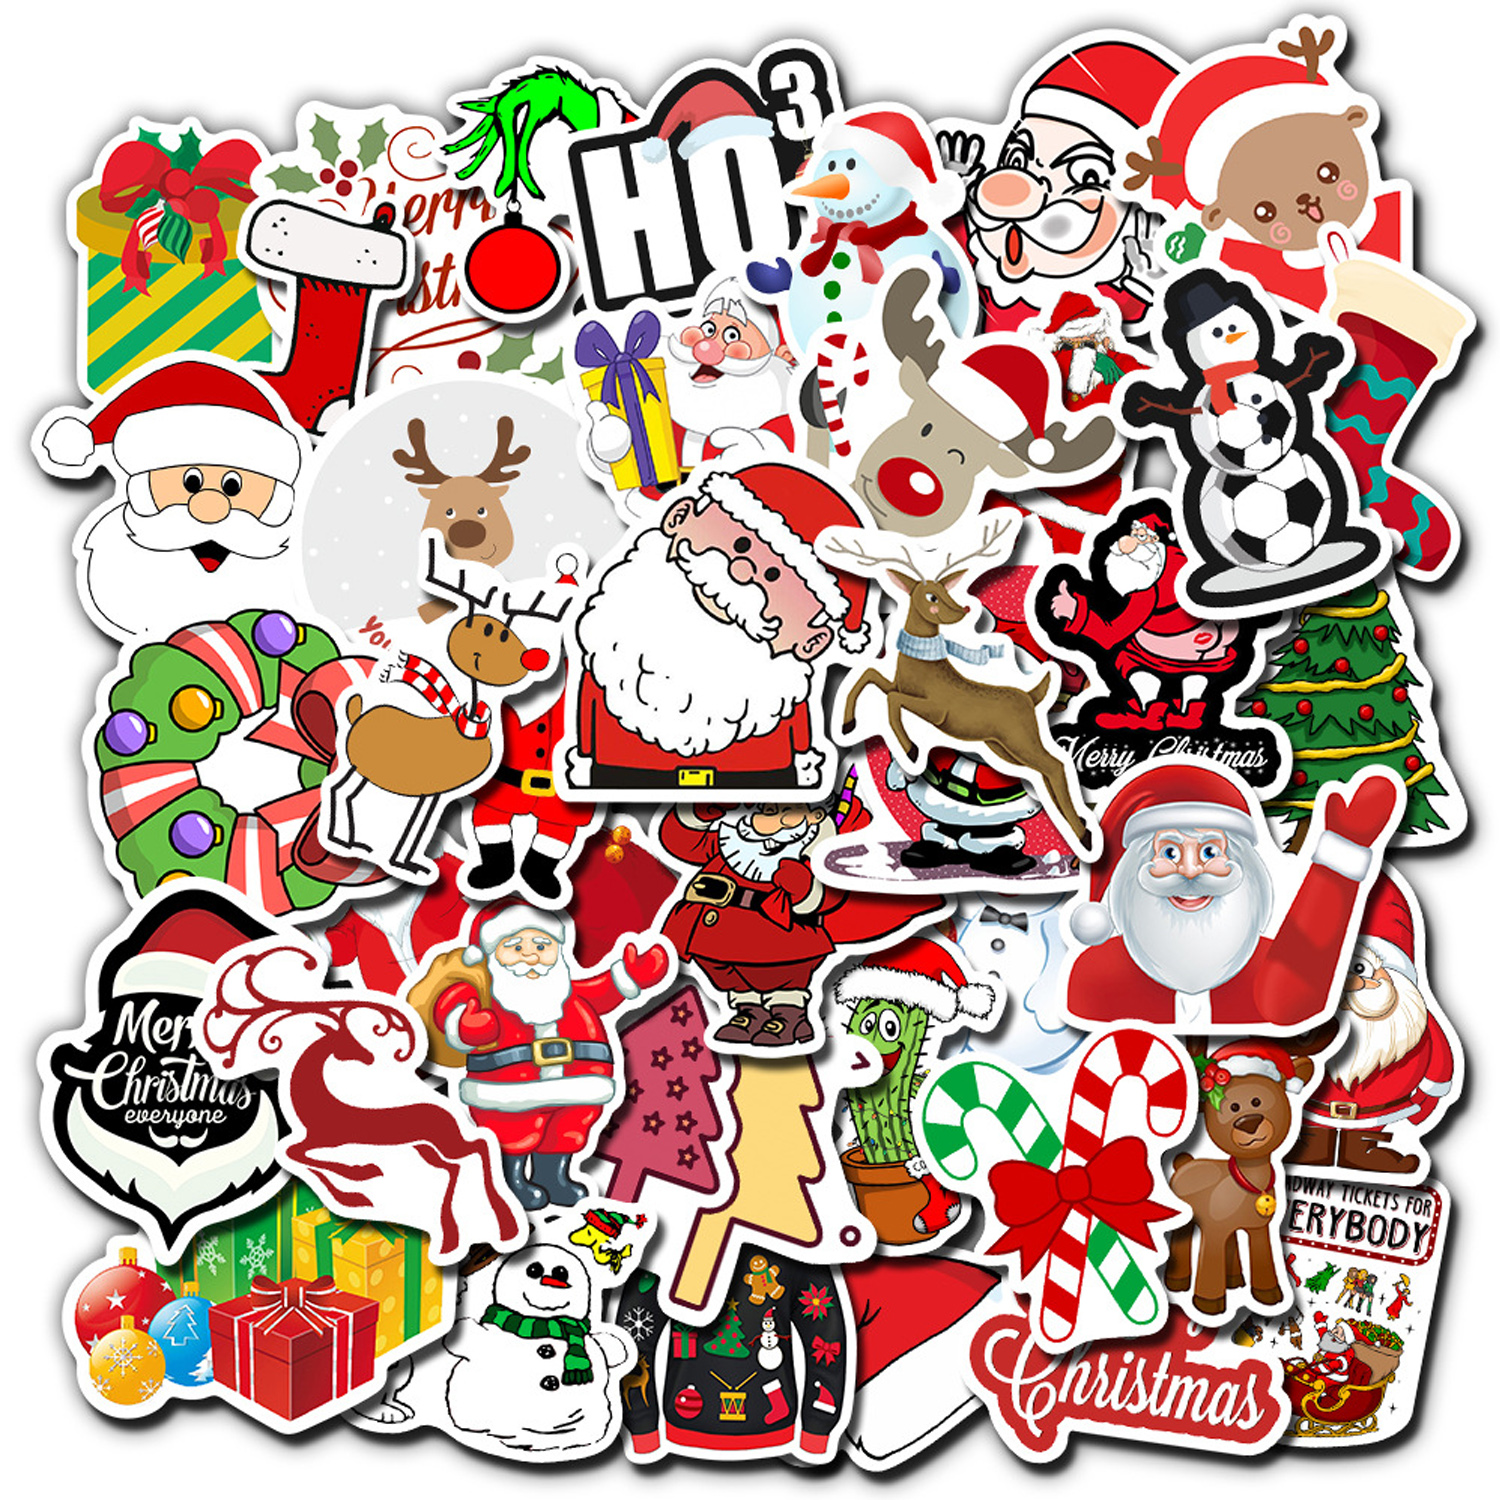 50PCS Fashion Waterproof Christmas Xmas Theme Decoration Stickers Decals For Suitcases Phones Laptops Tablets Skateboards